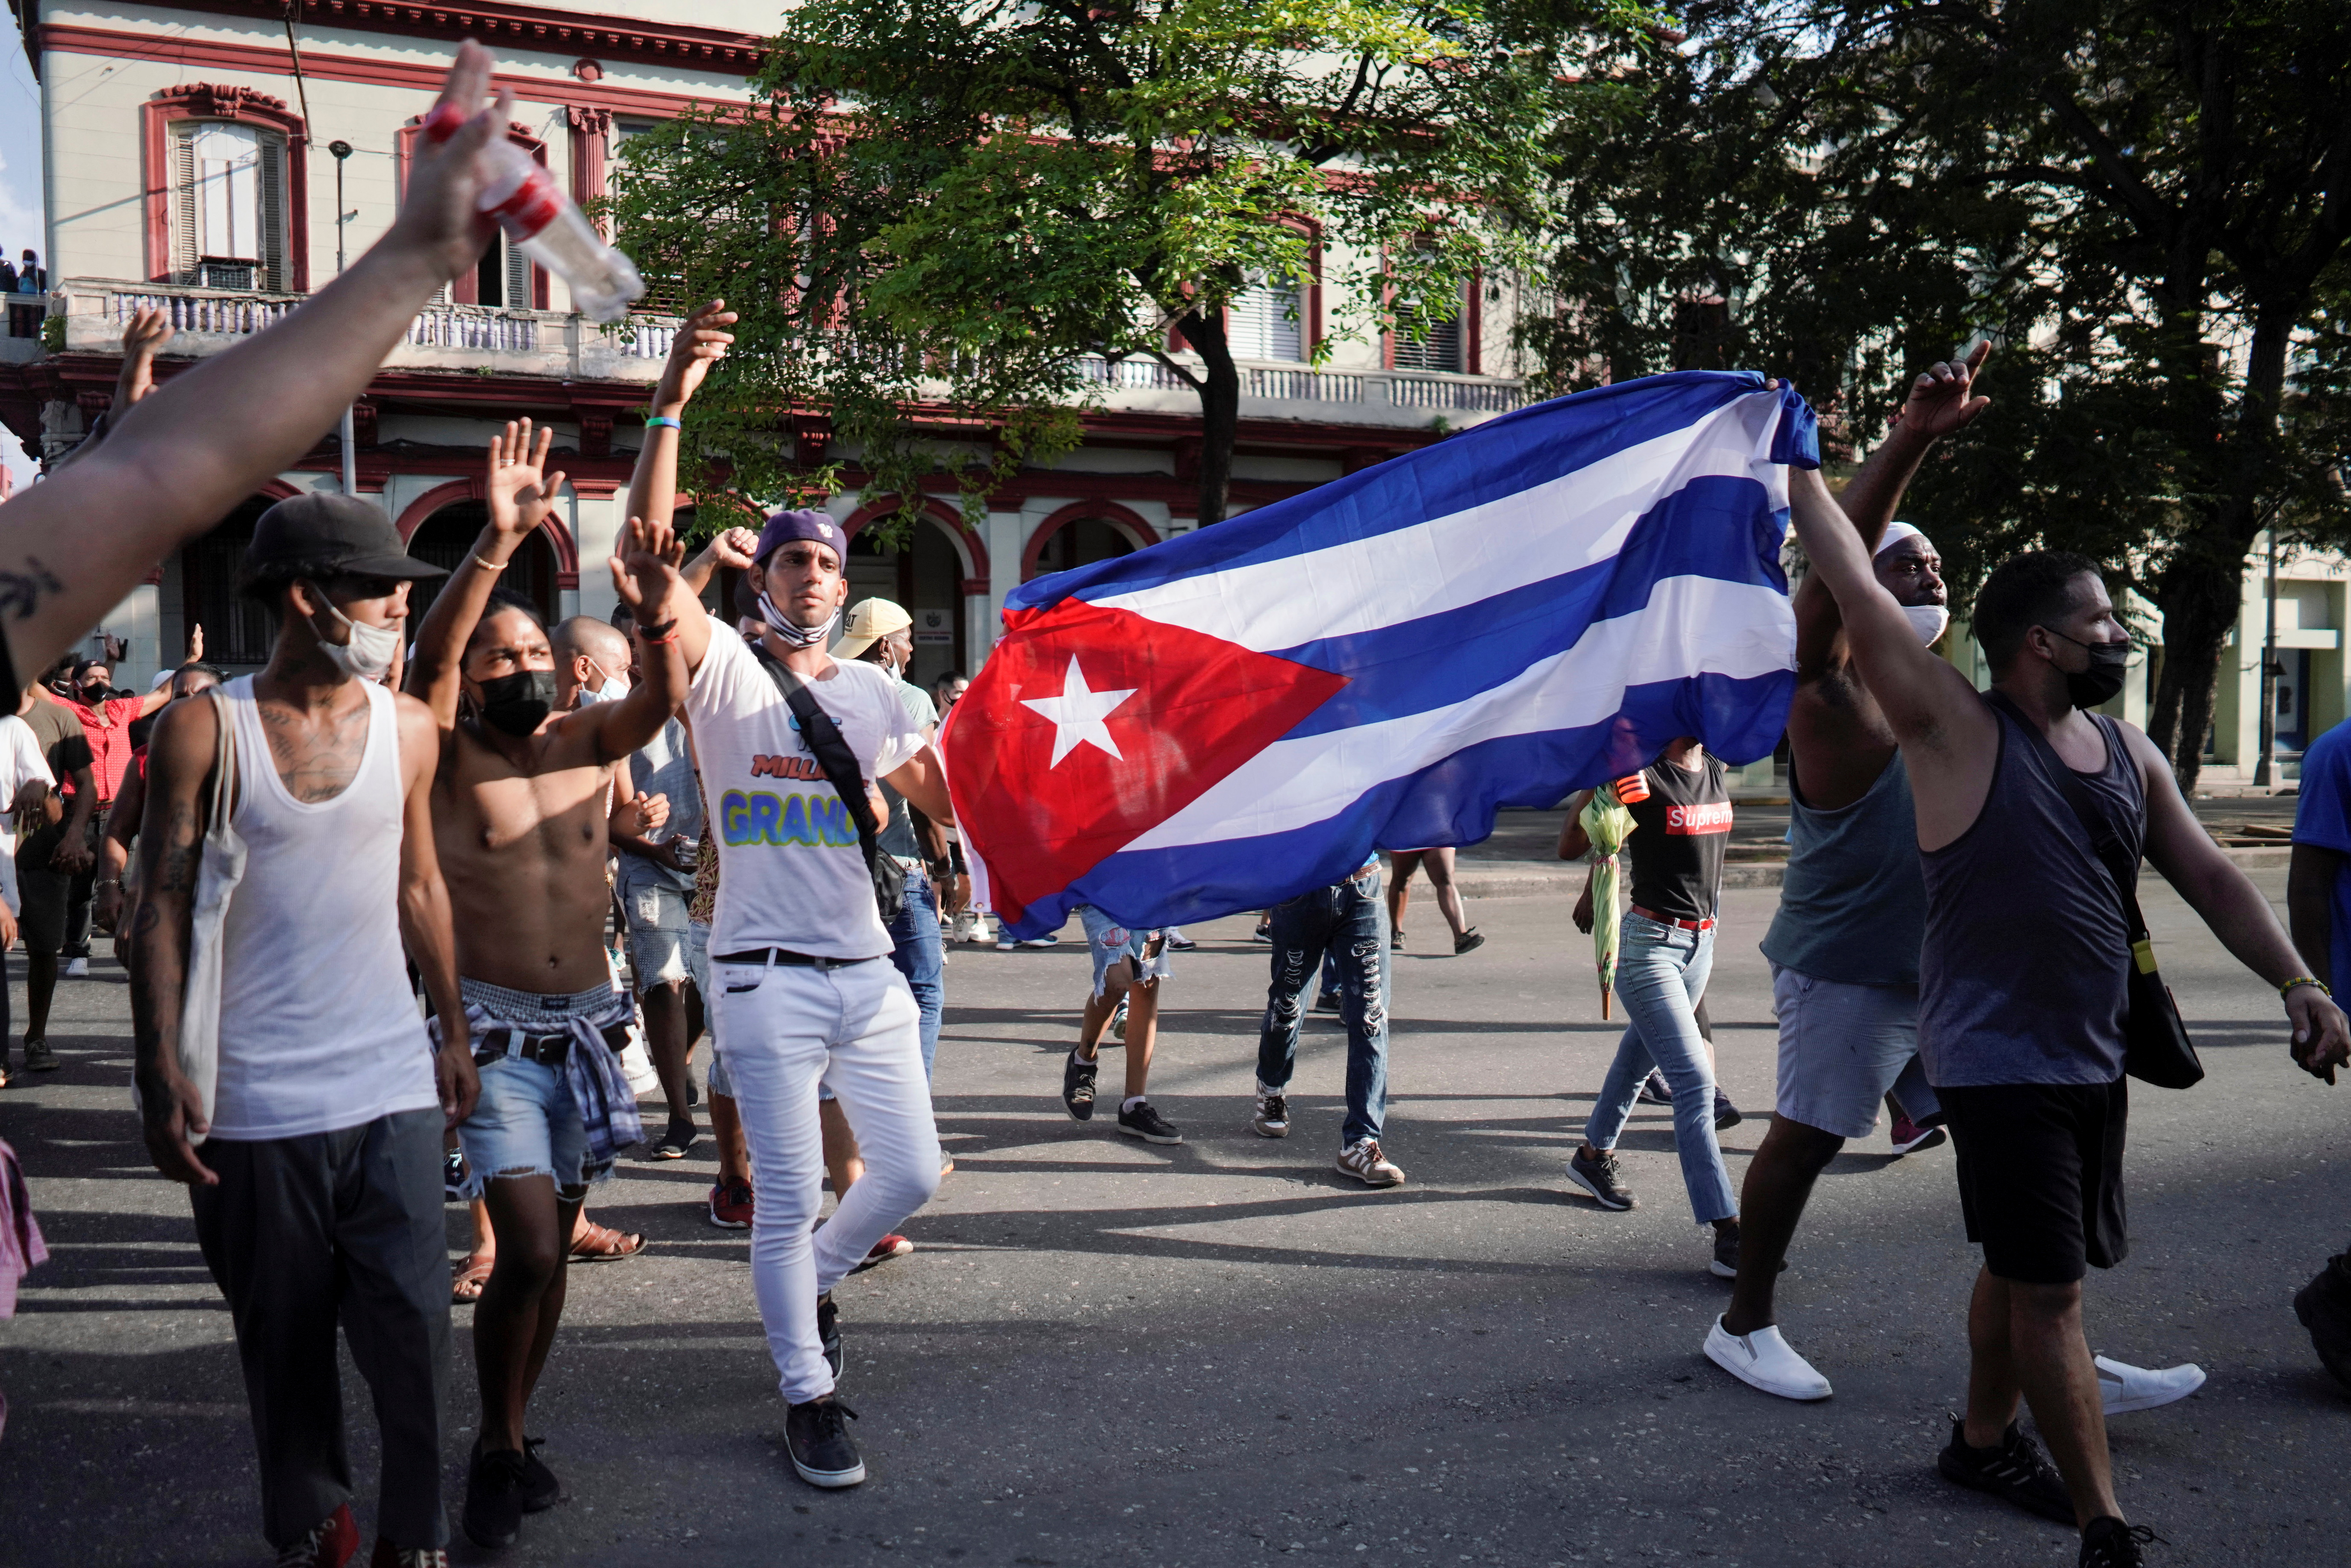 People hold Cuba's national flag during protests against and in support of the government, amidst the coronavirus disease (COVID-19) outbreak, in Havana, Cuba July 11, 2021. REUTERS/Alexandre Meneghini